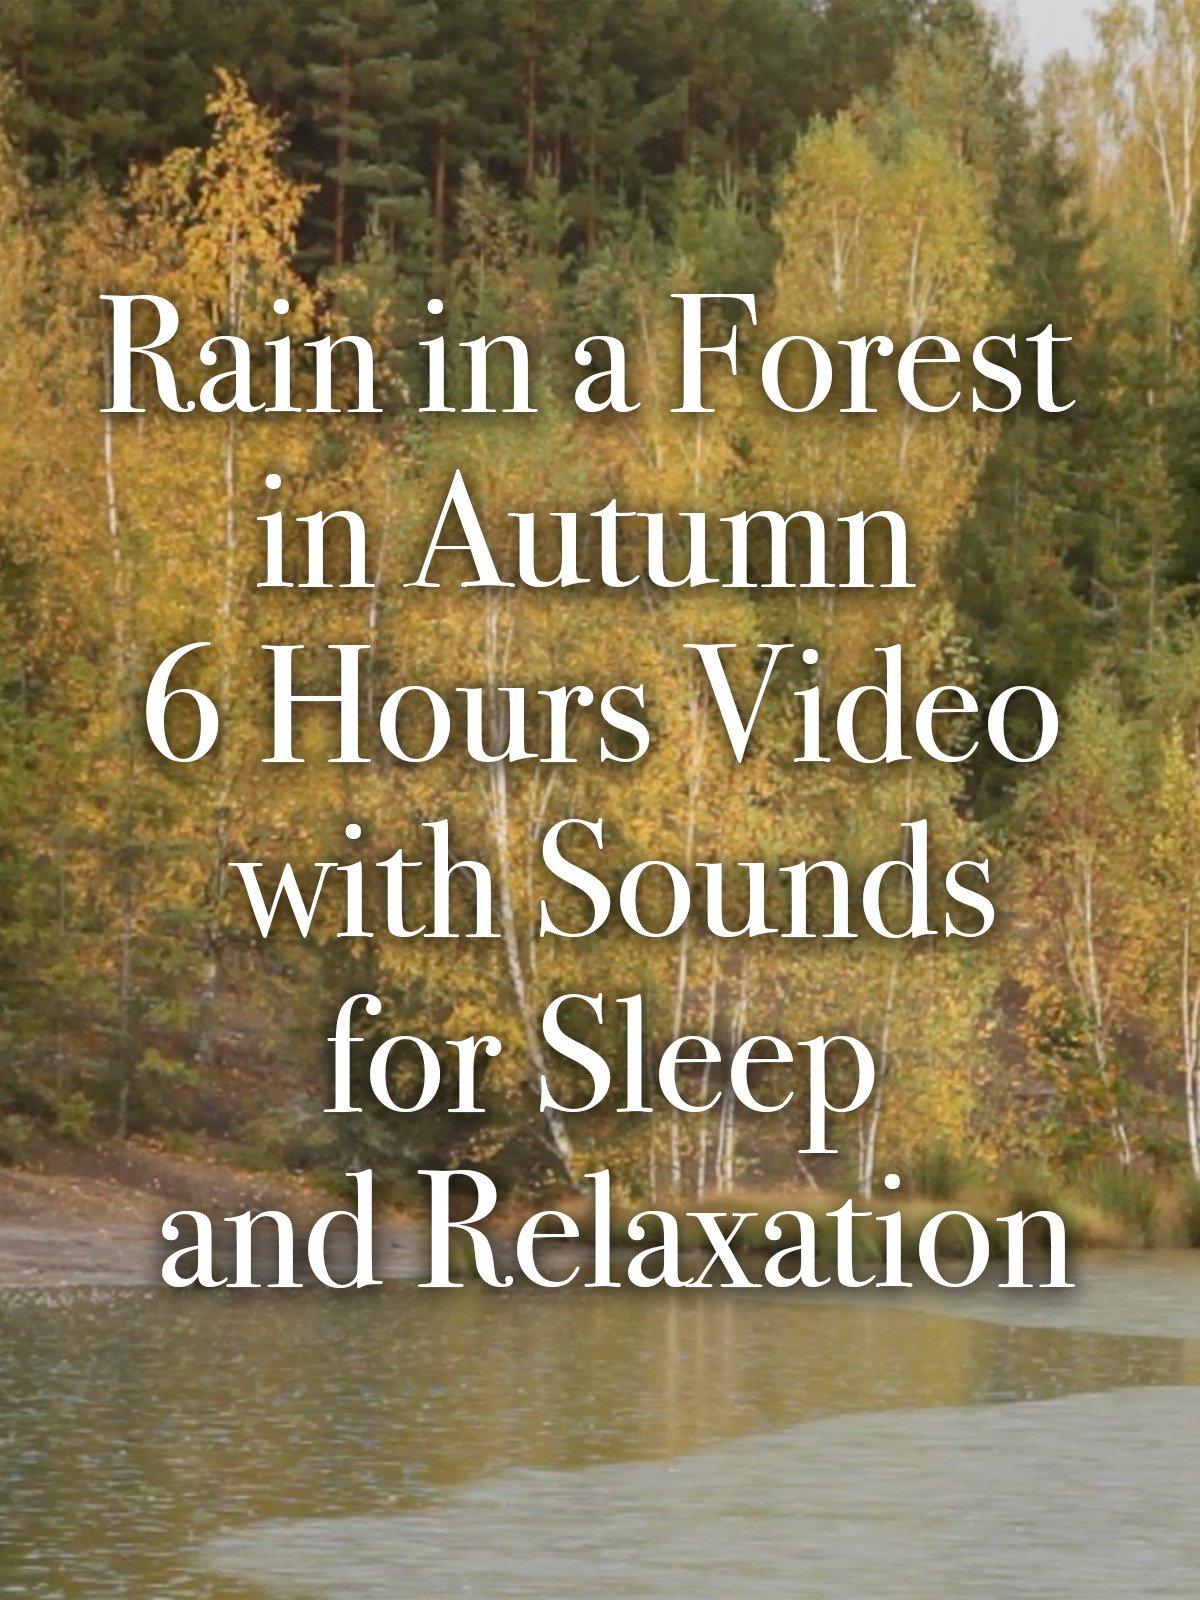 Rain in a Forest in Autumn 6 Hours Video with Sounds for Sleep and Relaxation